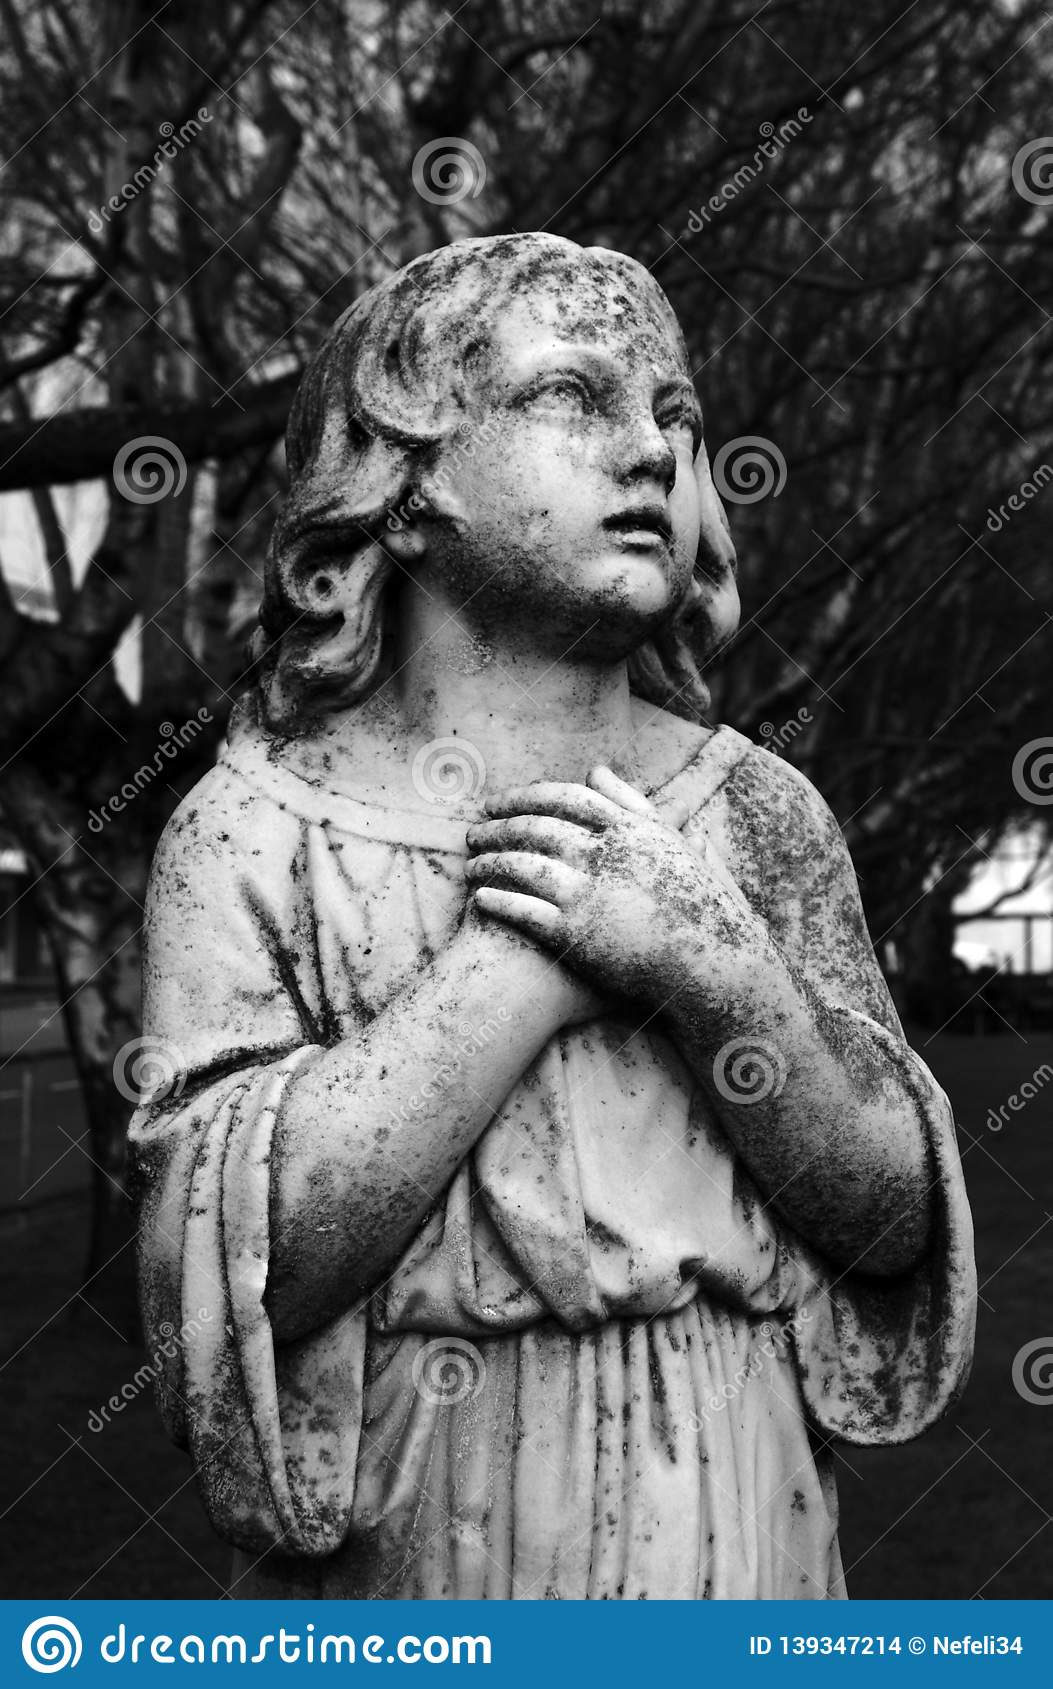 Black and White Angel Sculpture in Churchyard Cemetery